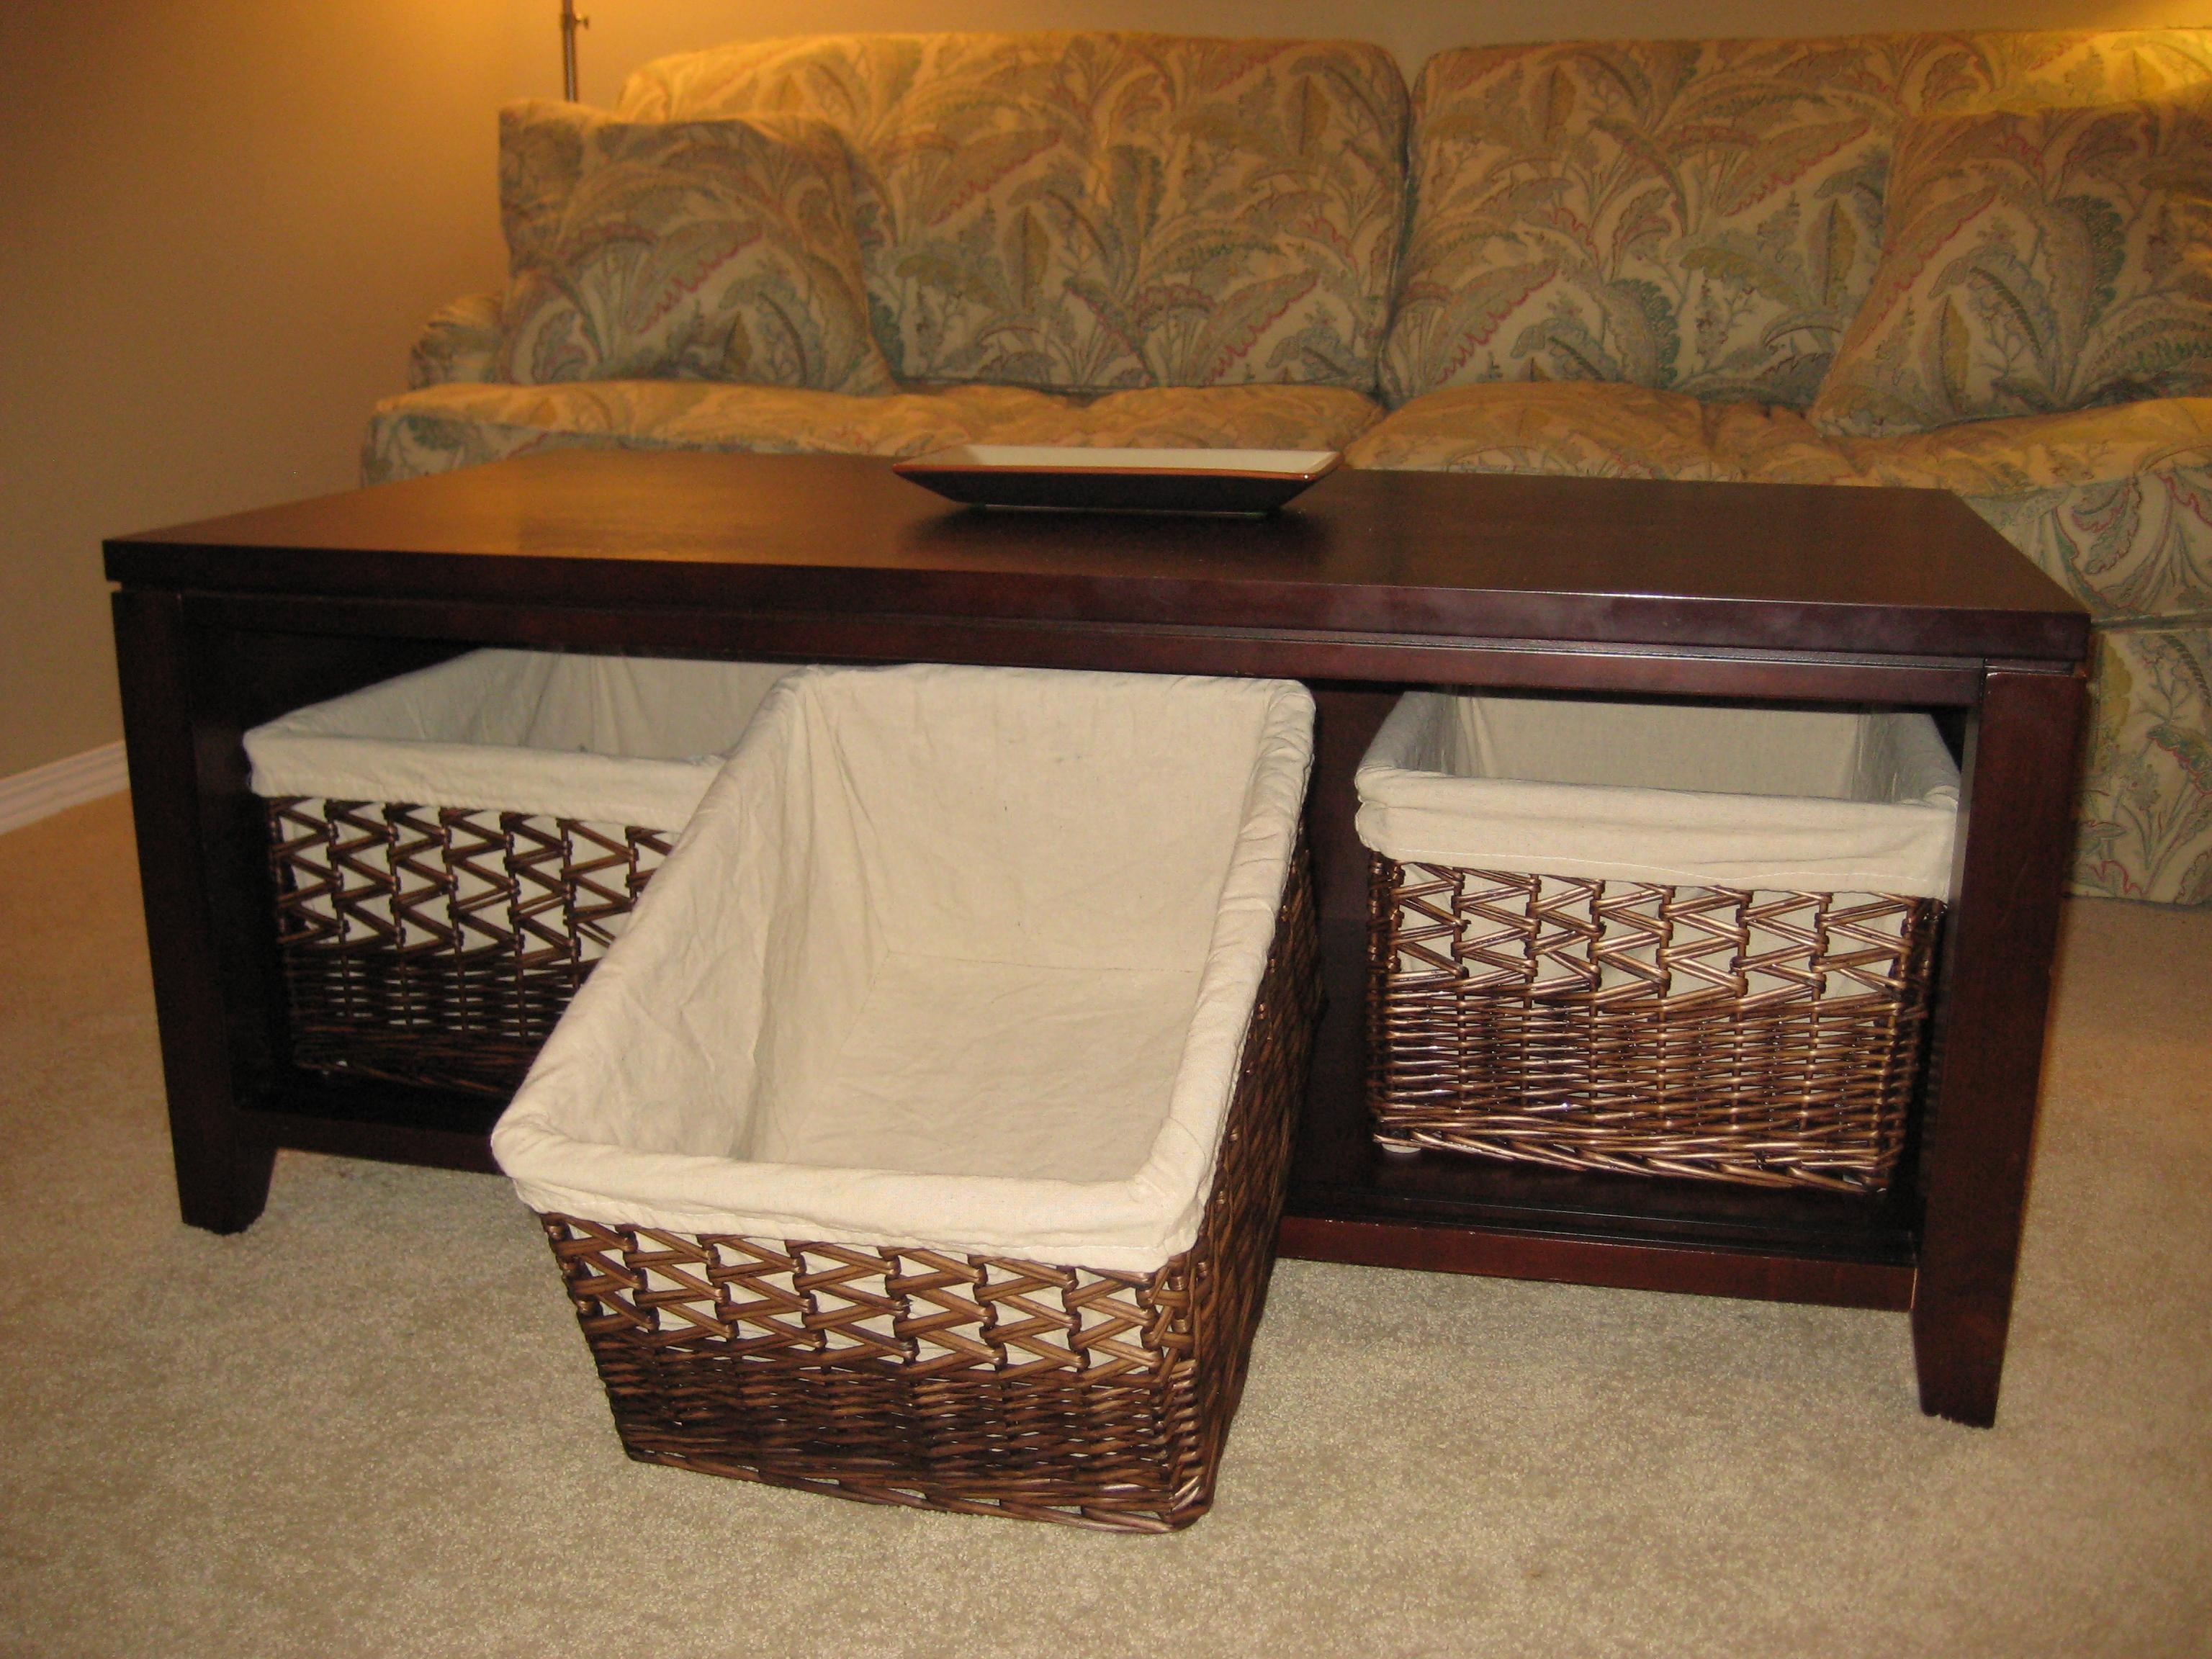 Coffee Table With Baskets For Storage – Thesecretconsul With Regard To Sofa Side Tables With Storages (View 9 of 25)